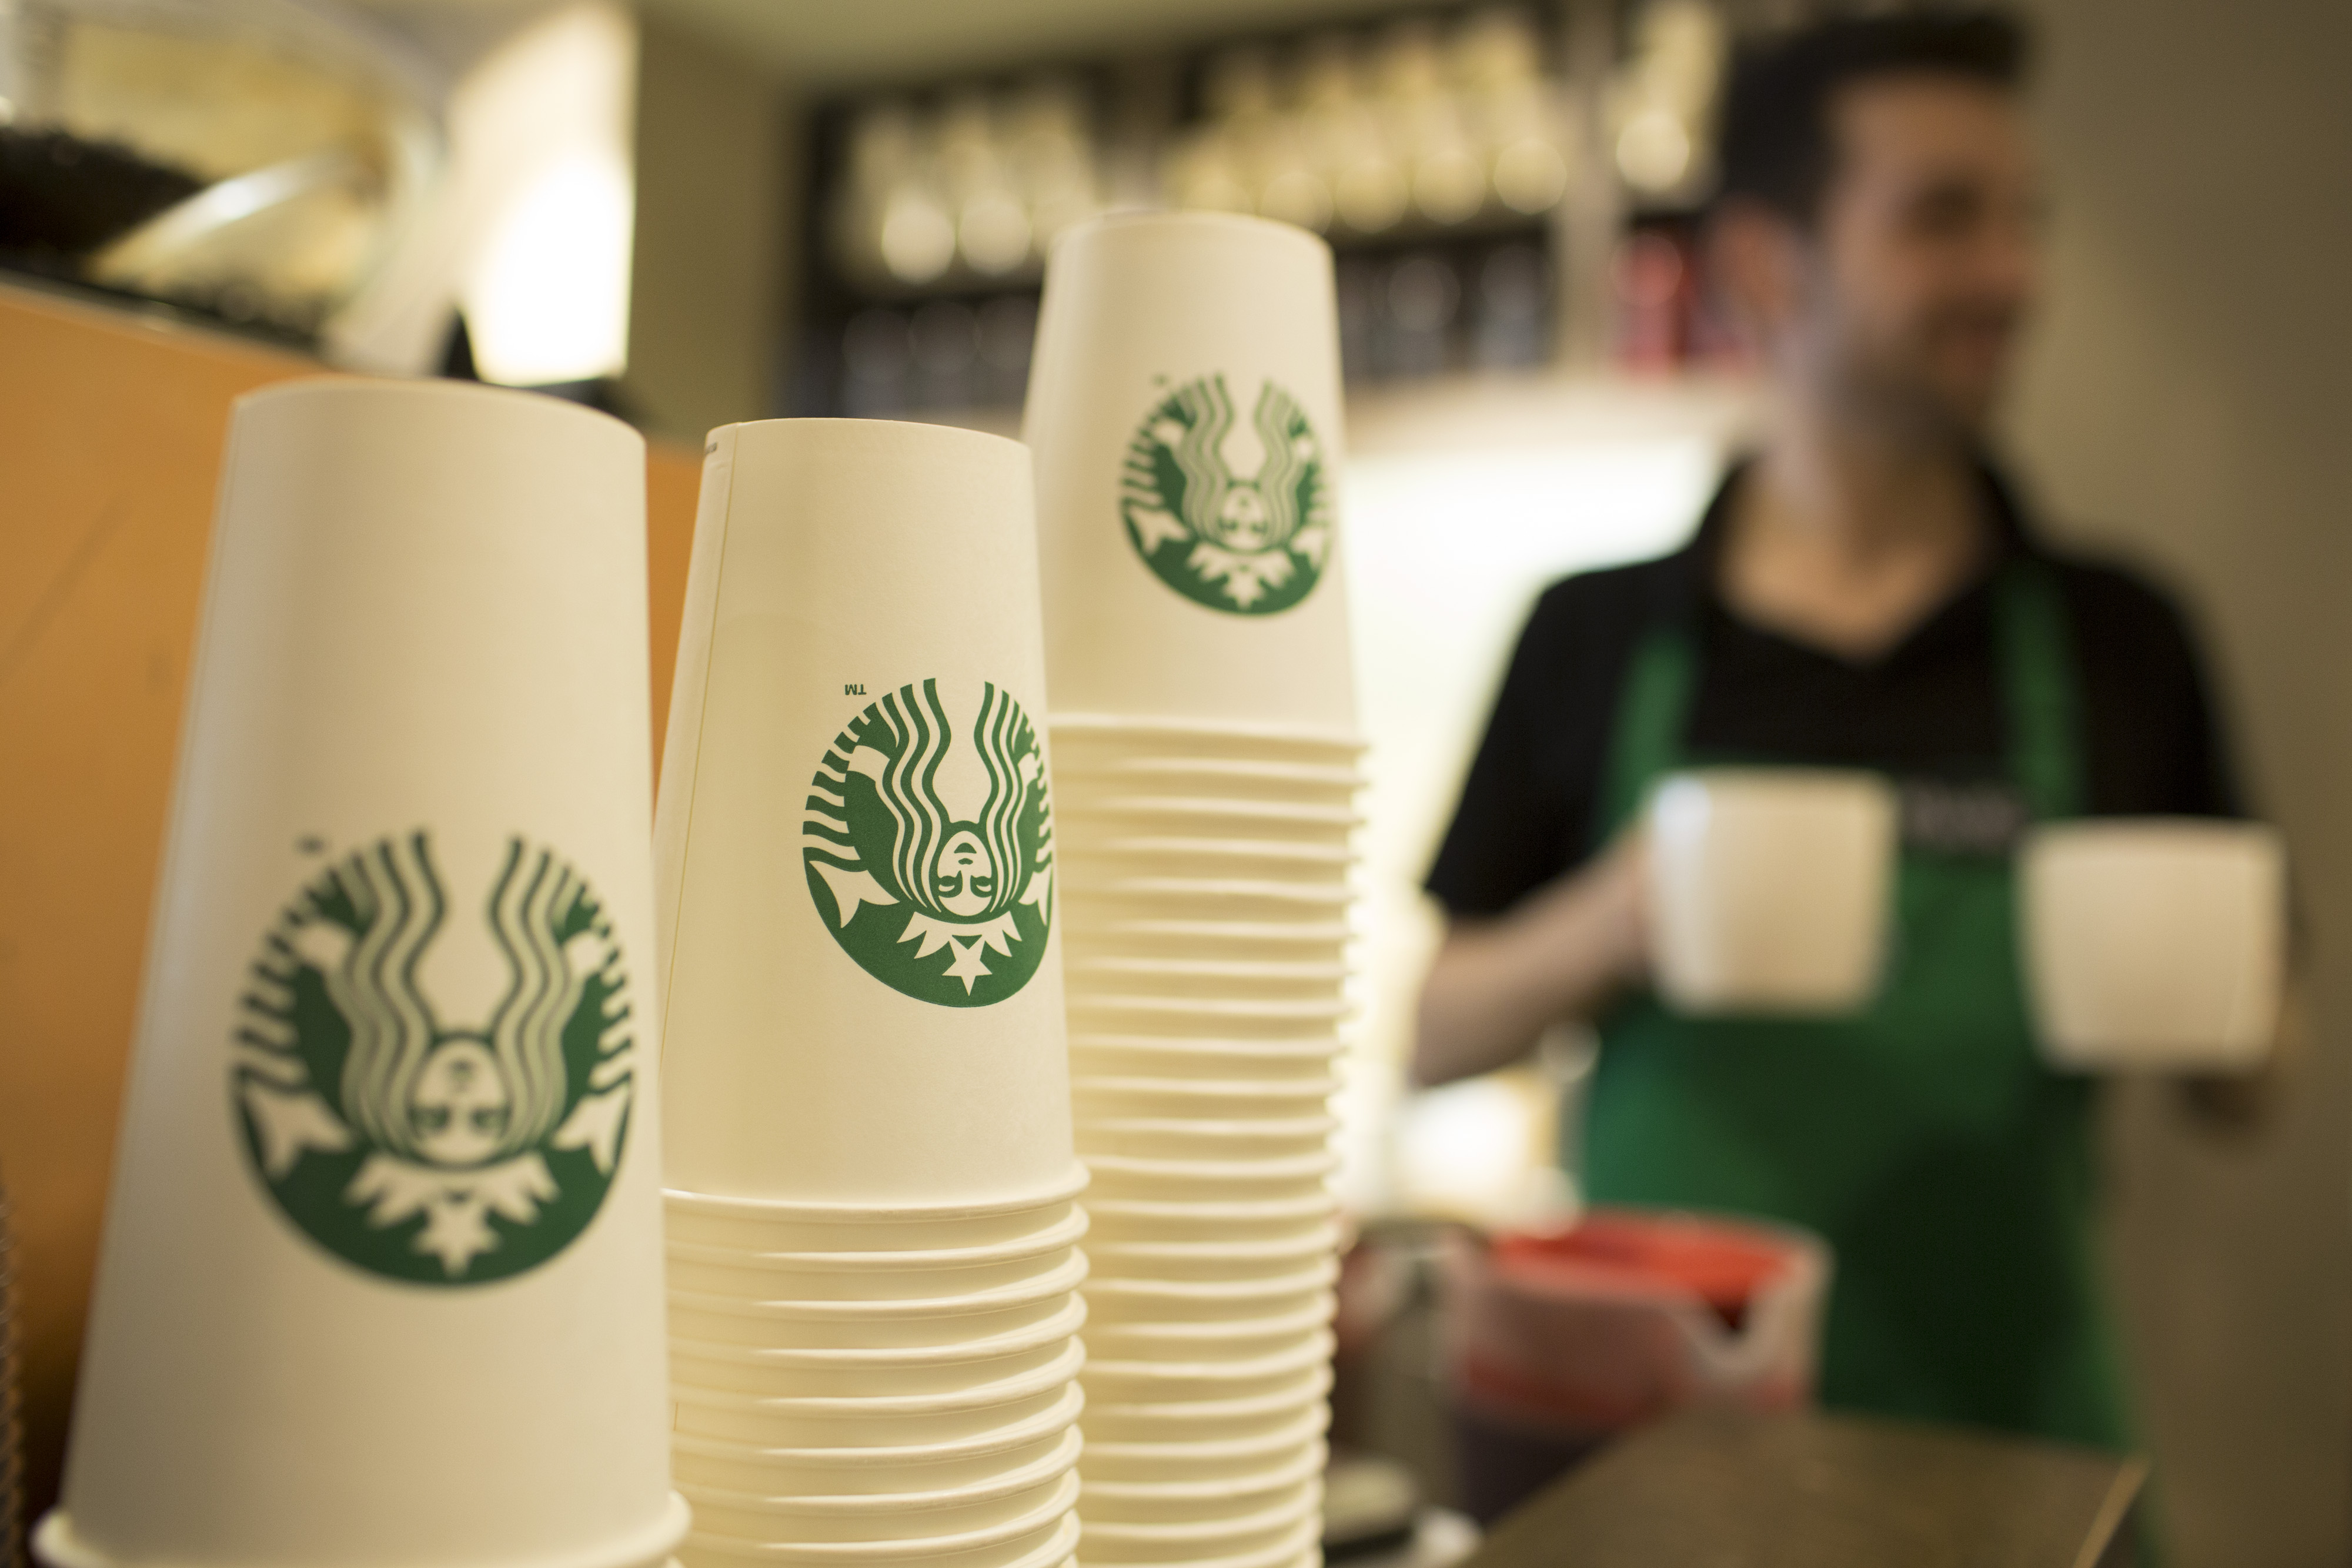 The Starbucks Corp. logo sits on cardboard coffee cups inside a Starbucks Corp. shop in London, U.K., on Monday, June 9, 2014.